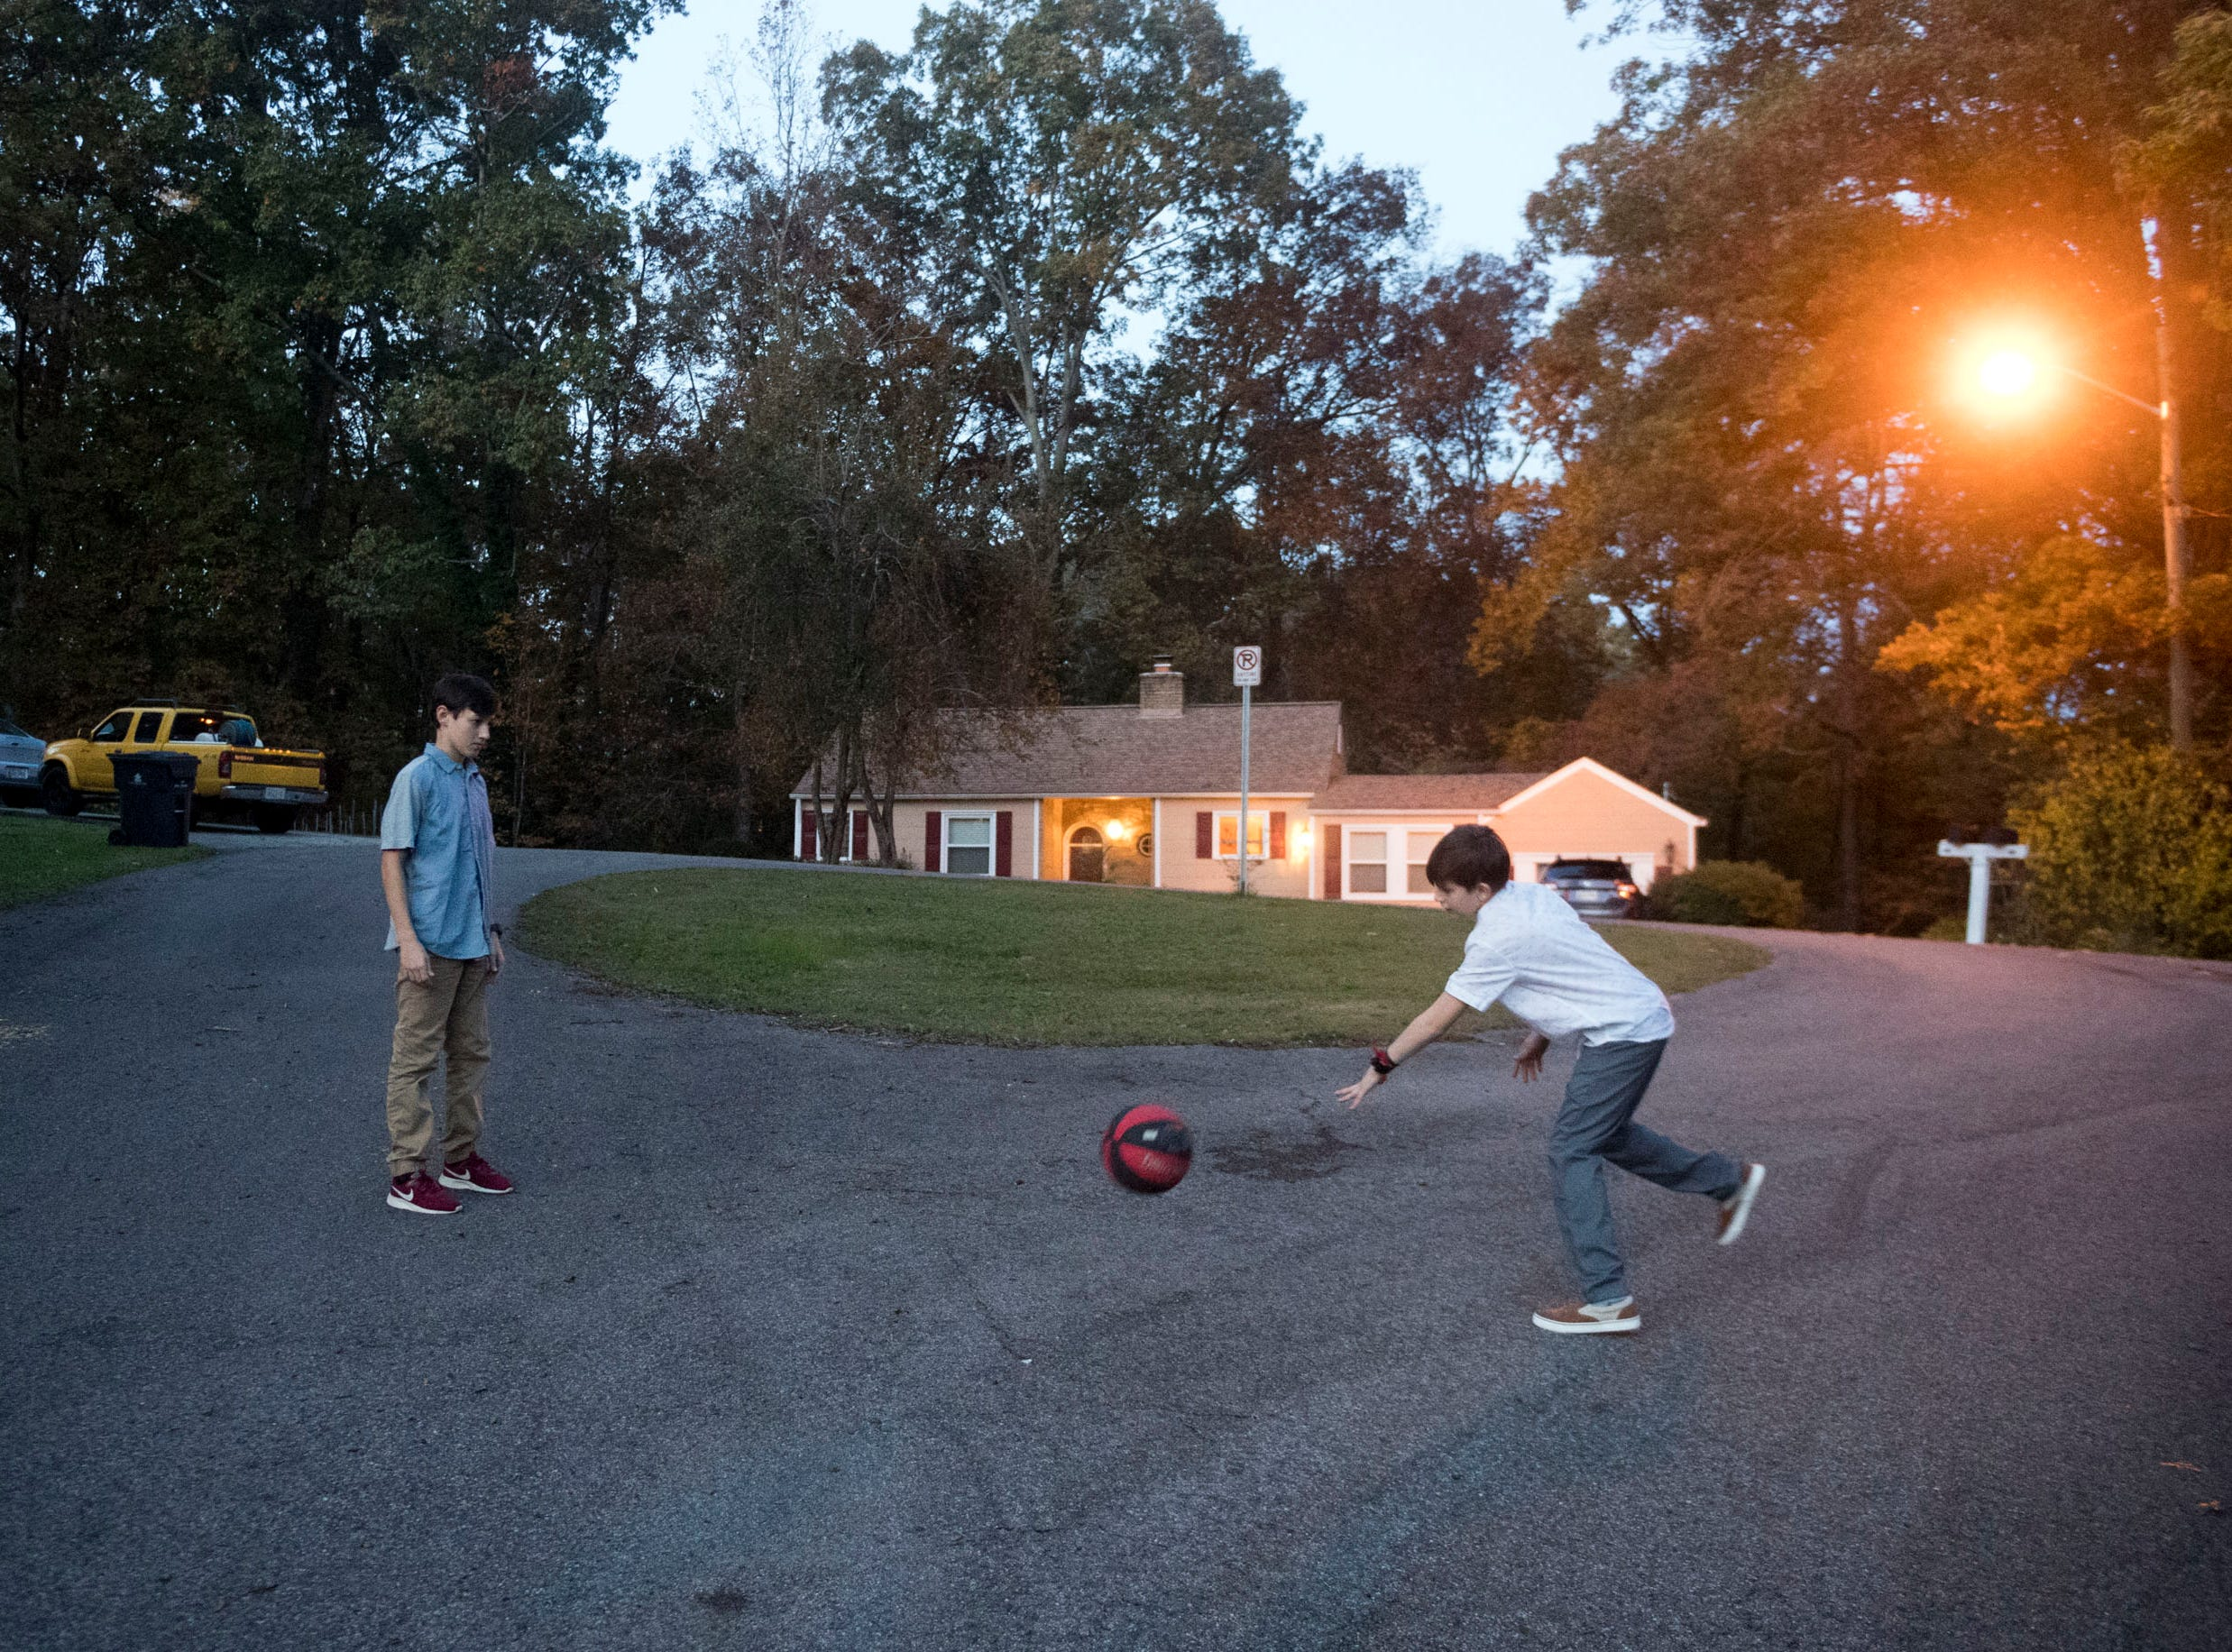 Nick and Blake Hall practice basketball outside their home. The family lives in South Knoxville.